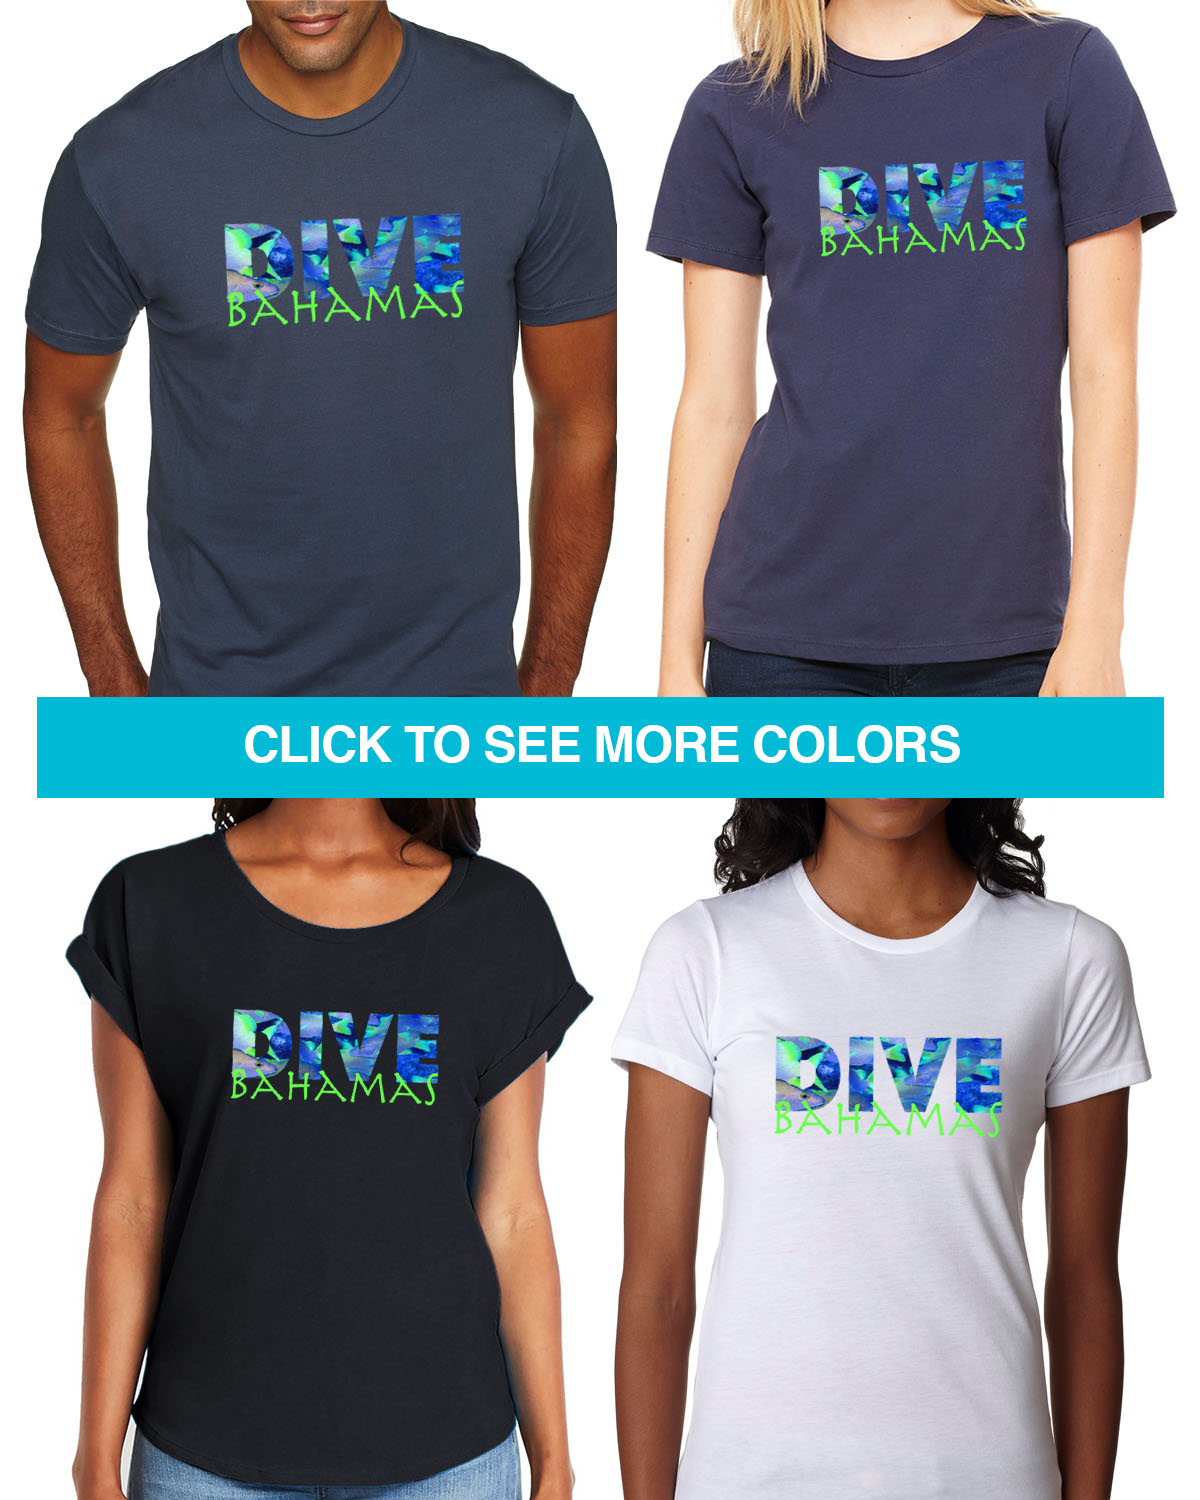 DIVE Bahamas Tees for Men & Women